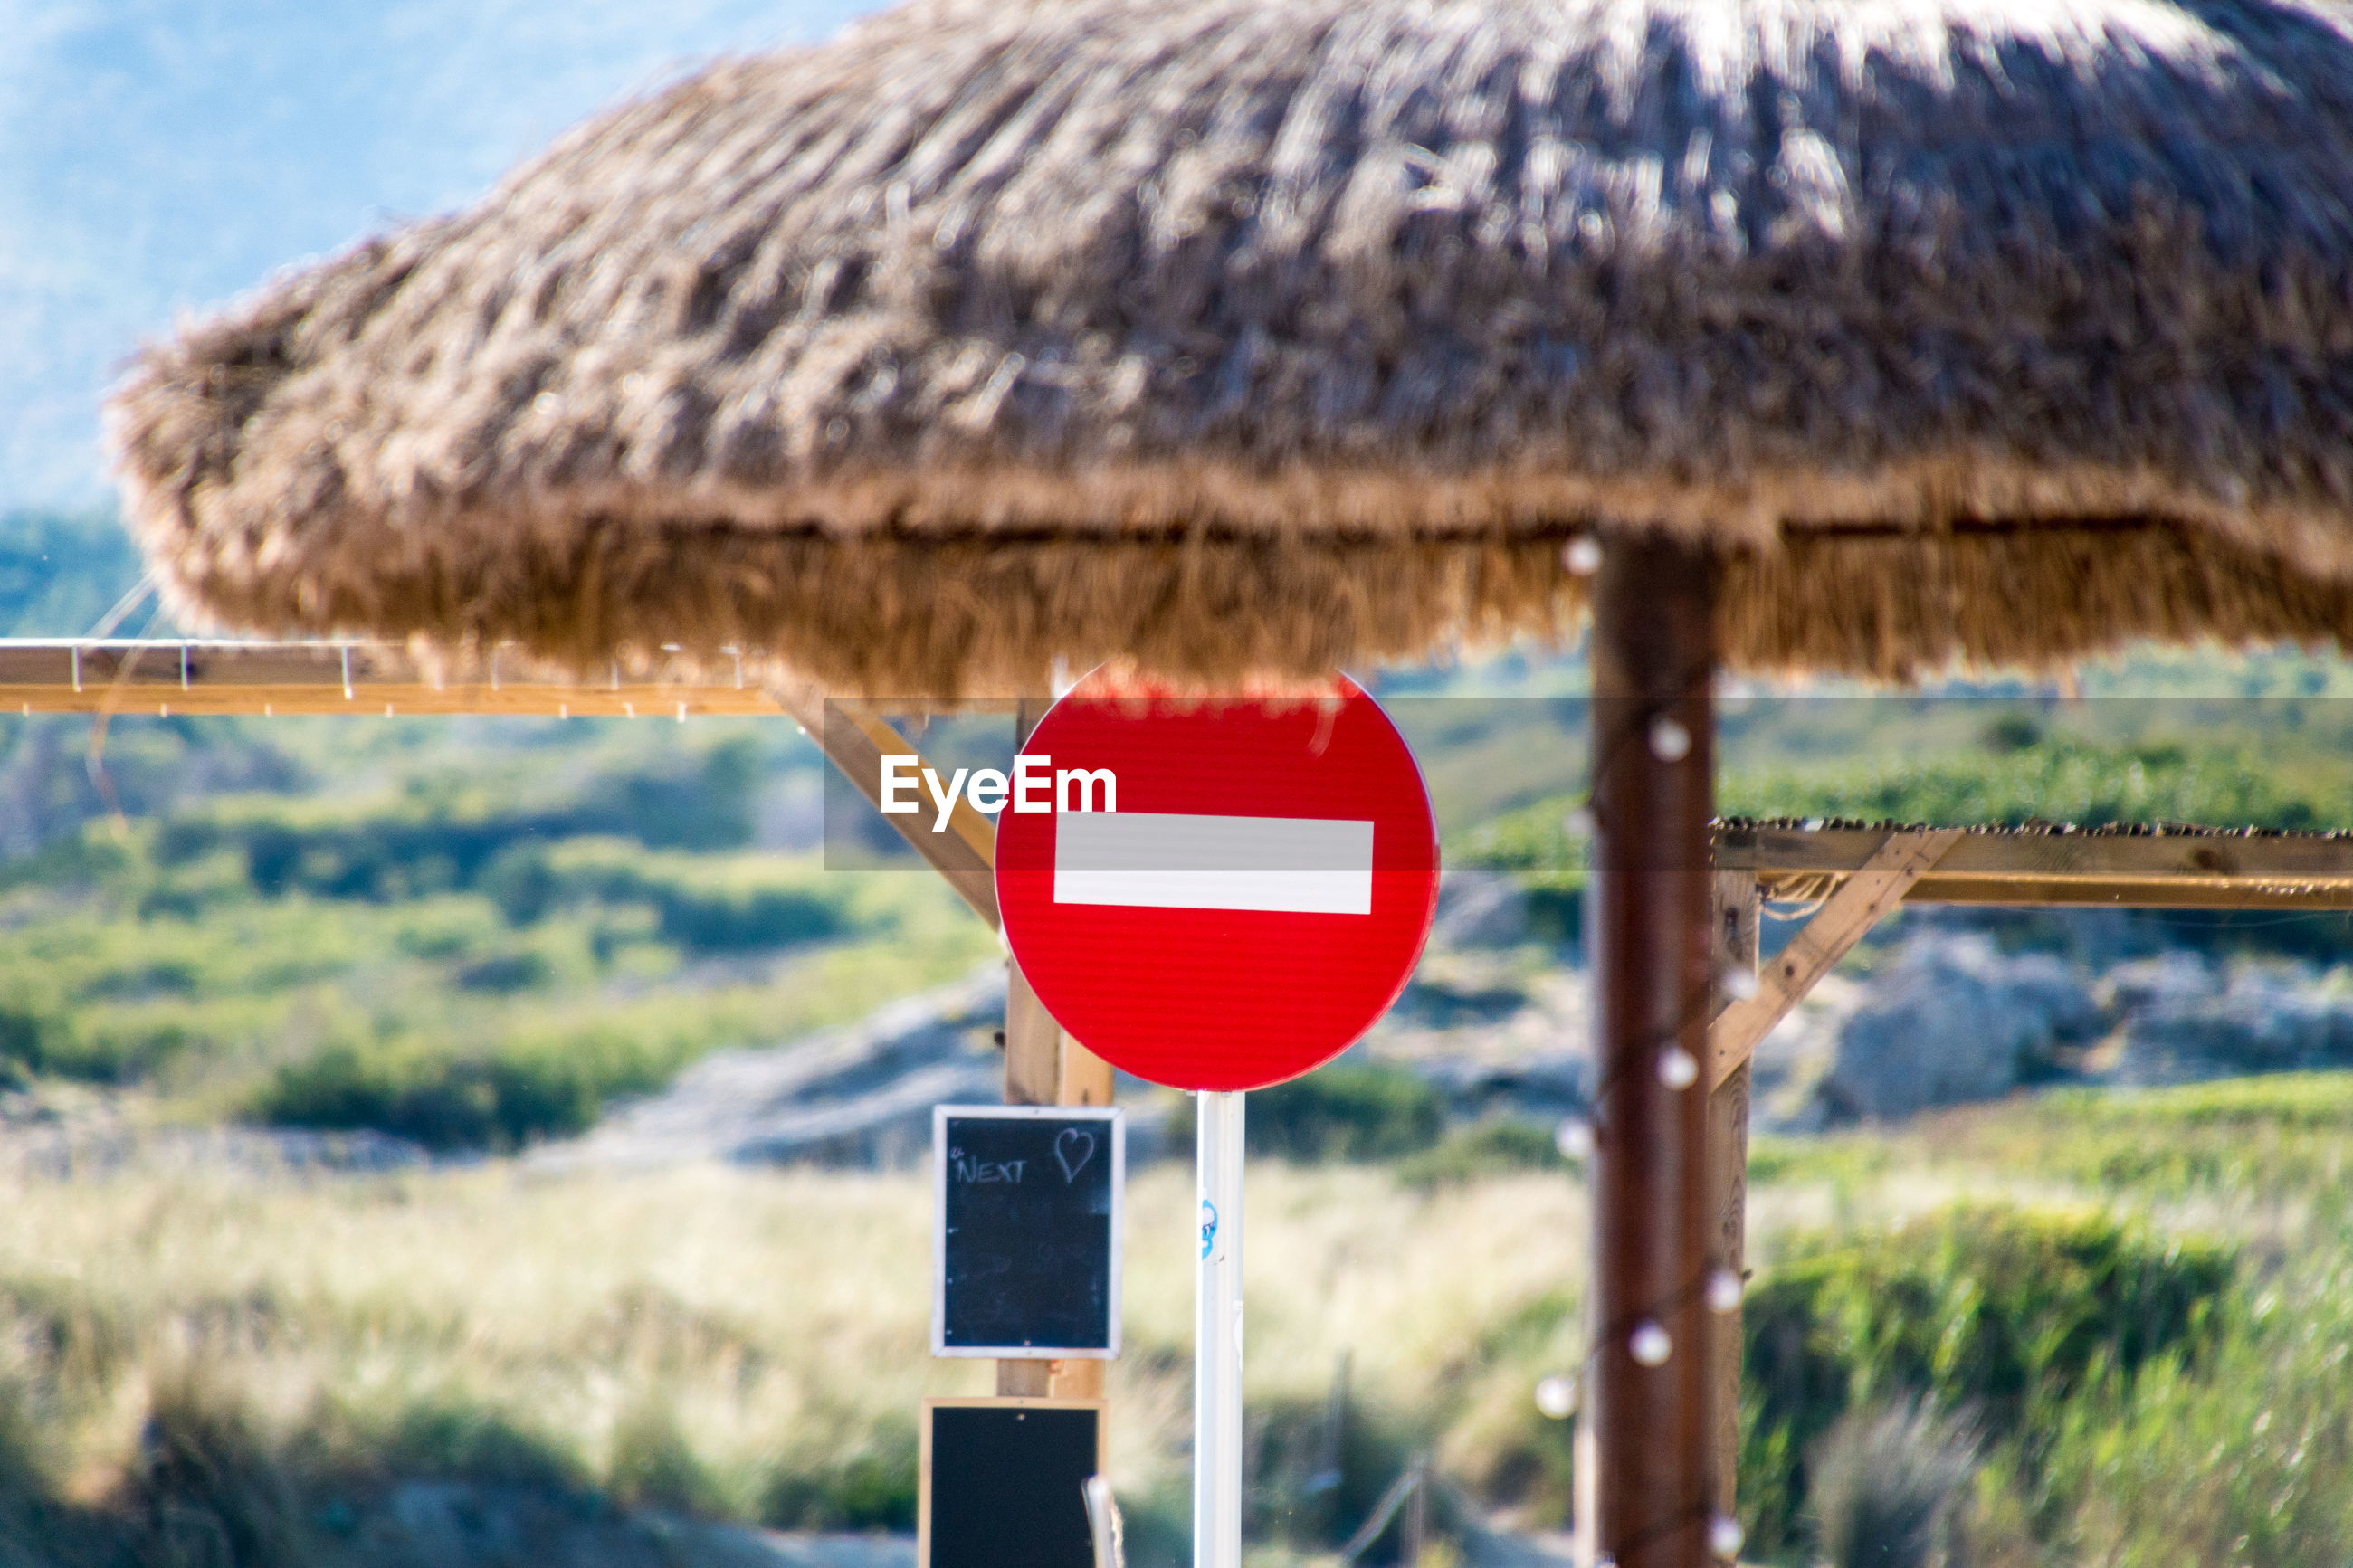 Thatched roof against do not enter sign on field